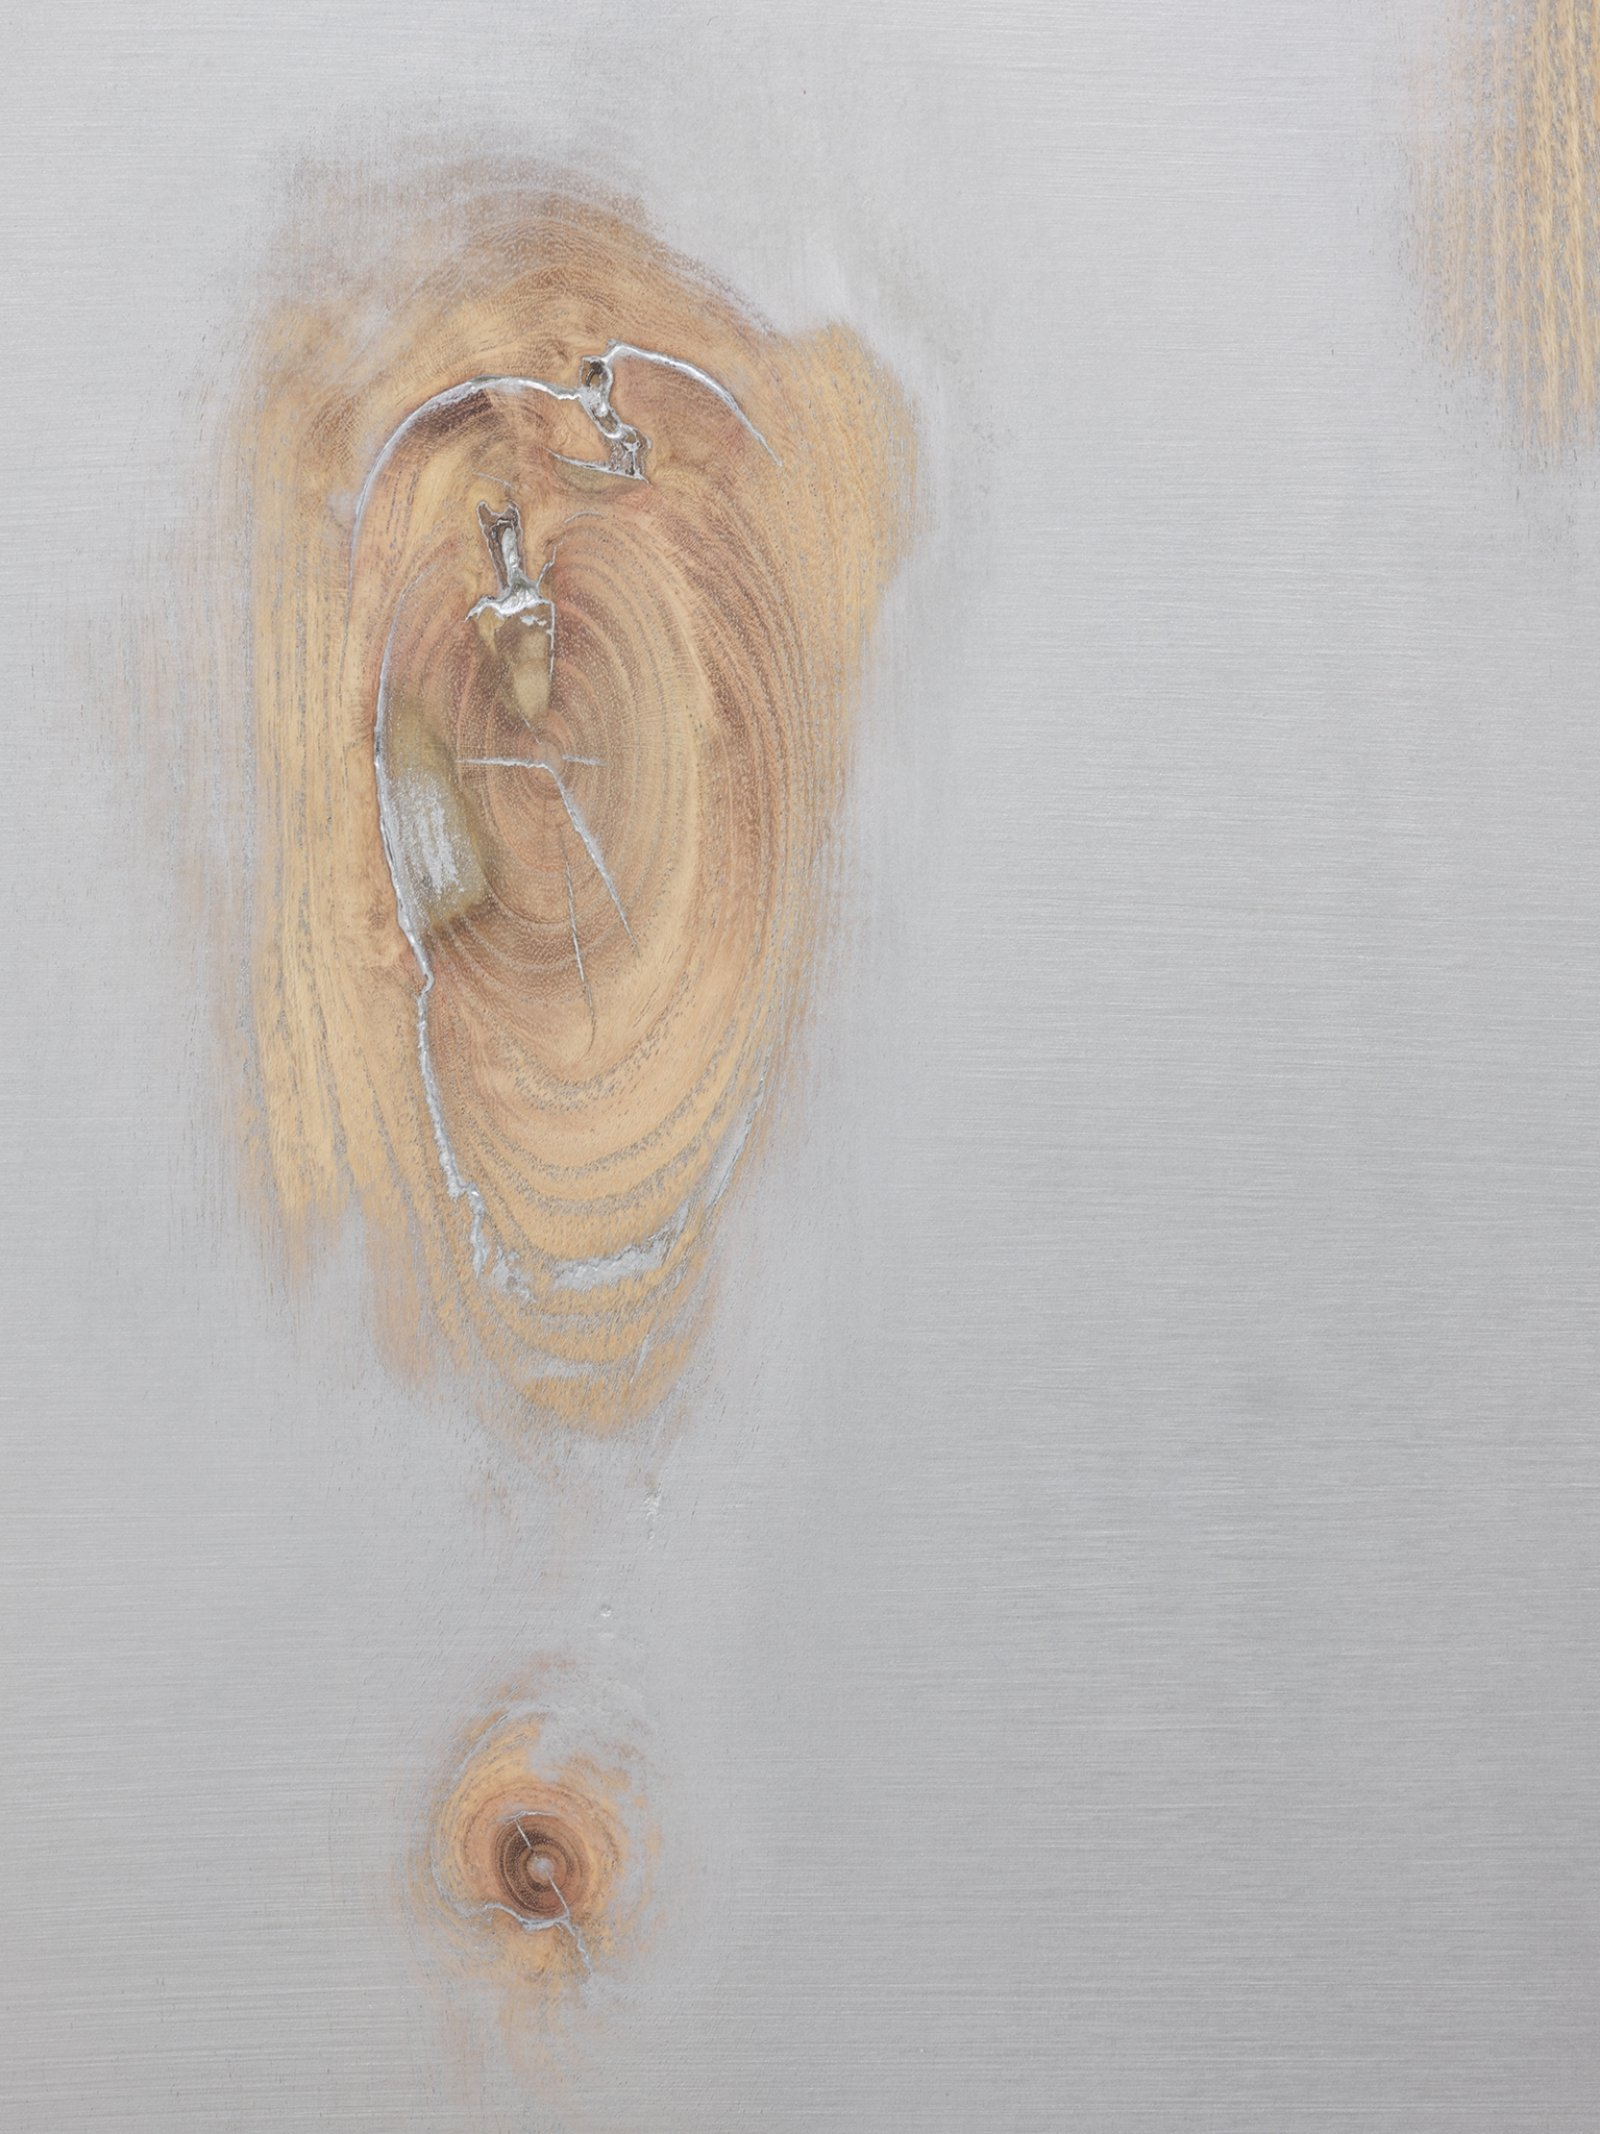 Ashes Withyman, Traceless, no more need to hide (now the old mirror reflects everything) (detail), 2020, basswood wood, honey locust wood, paint, 30 x 23 in. (76 x 57 cm) by Ashes Withyman